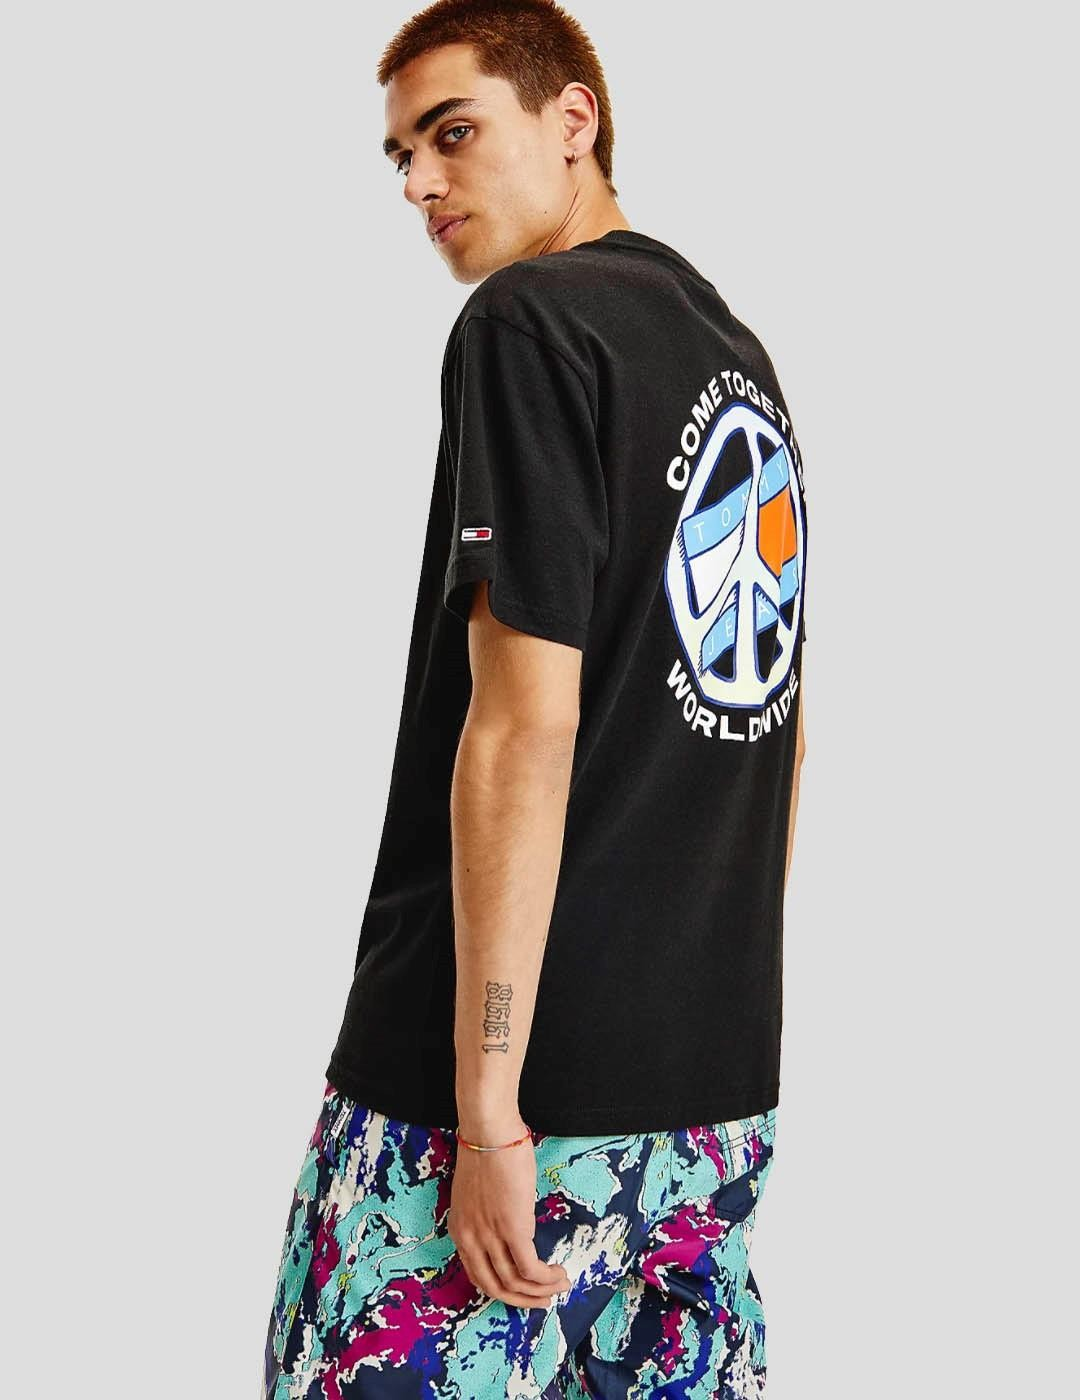 CAMISETA TOMMY JEANS TOGETHER WORLD PEACE TEE BLACK